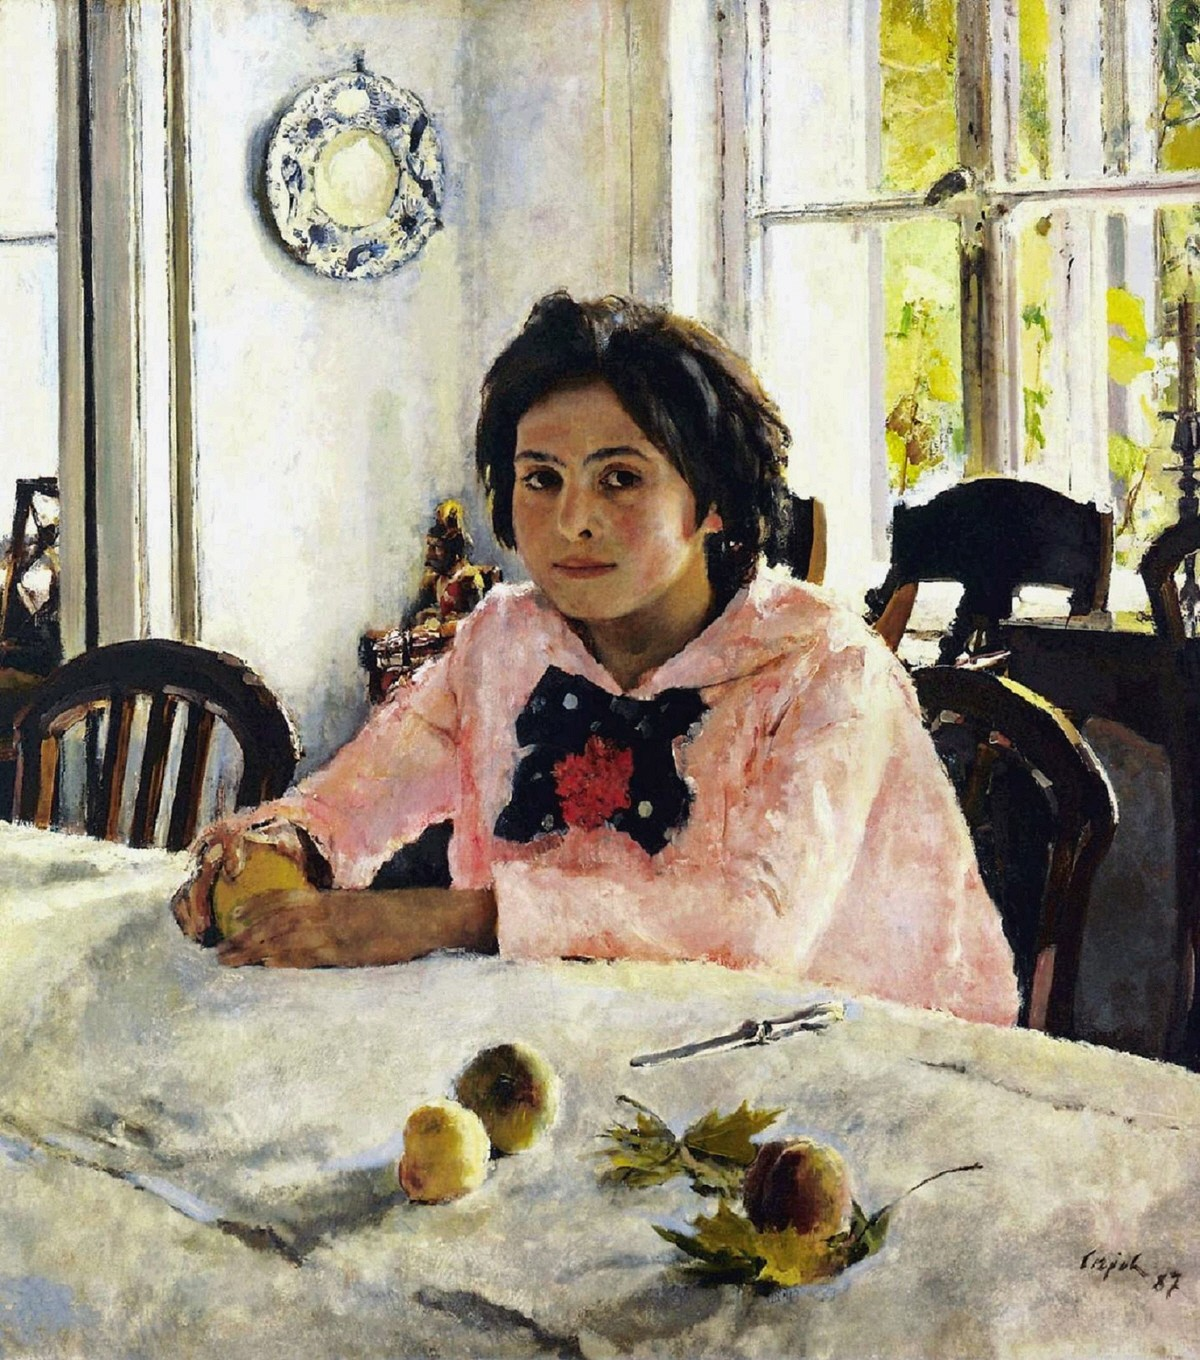 00 Valentin Serov. Girl with Peaches. 1887